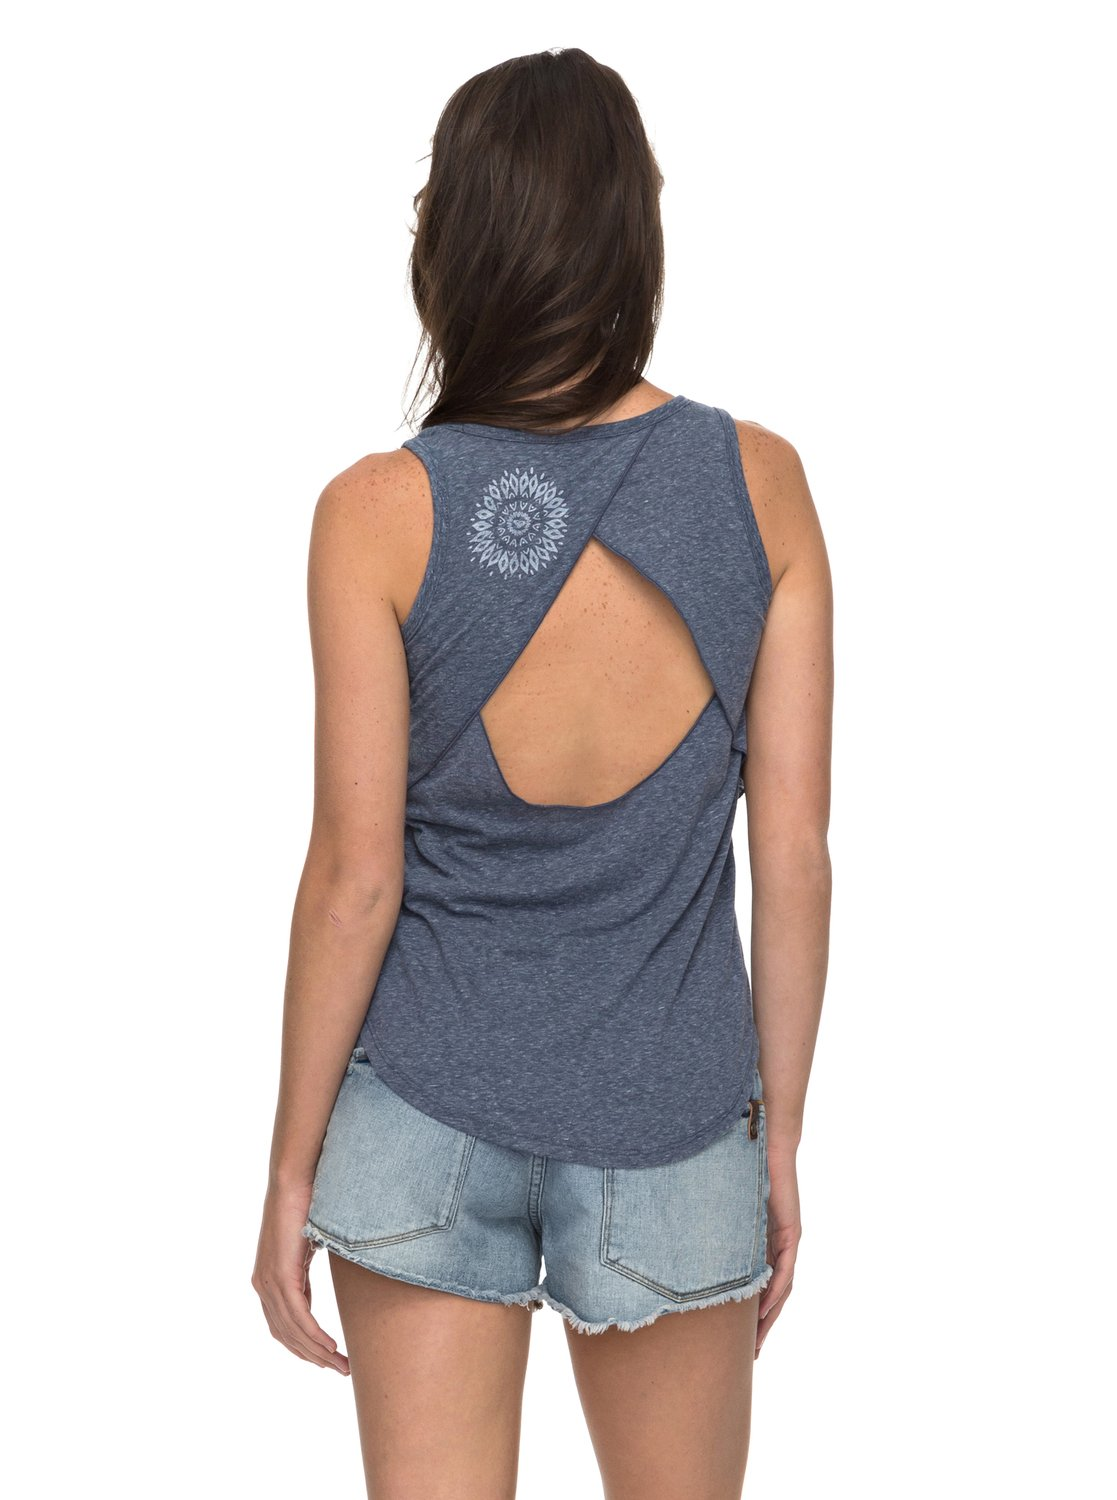 Find sexy open back tops at ShopStyle. Shop the latest collection of sexy open back tops from the most popular stores - all in one place.